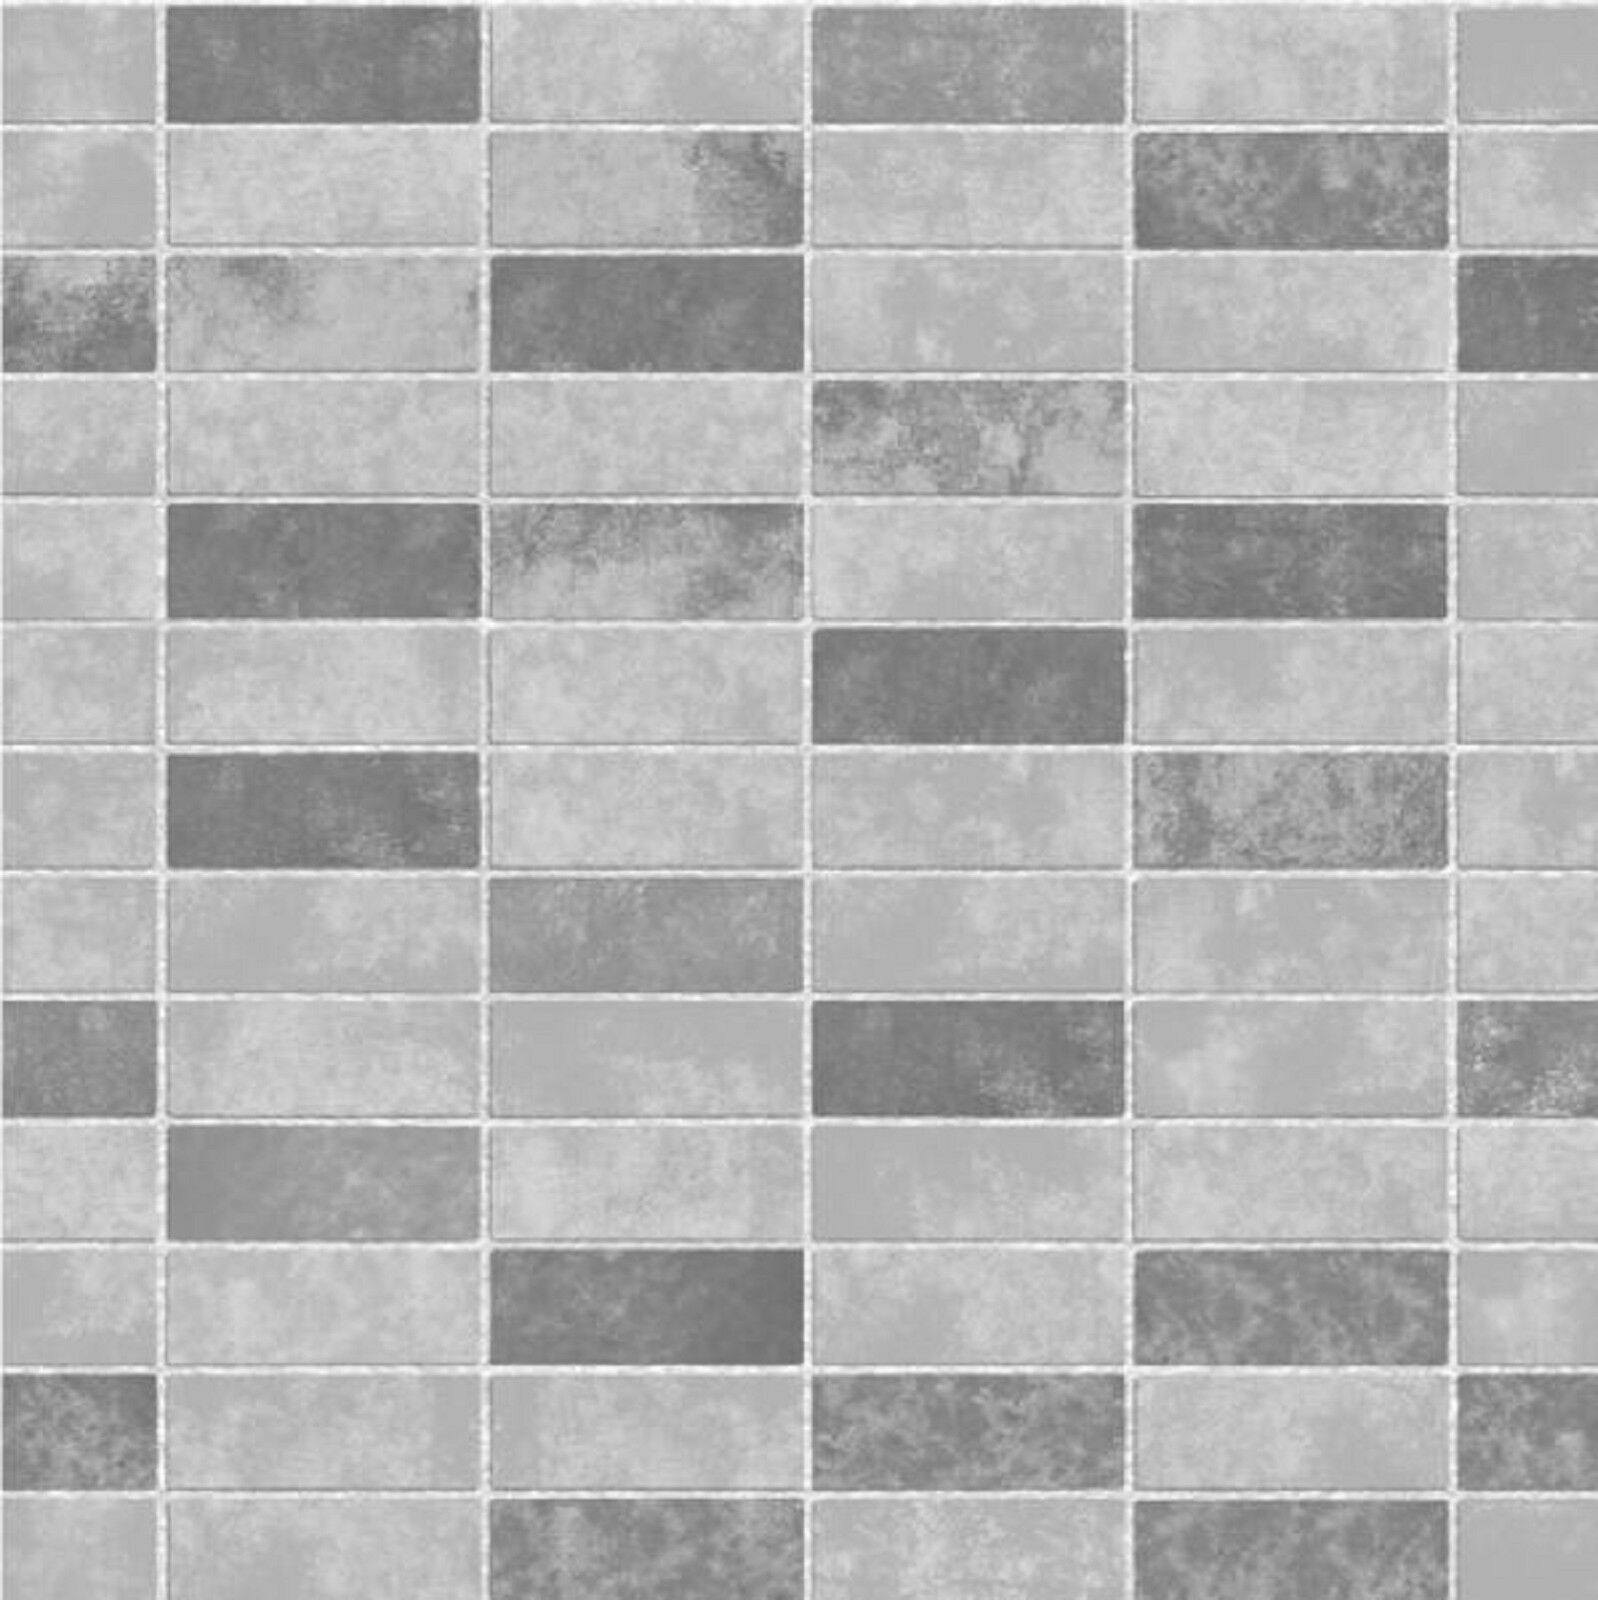 White Brick Wallpaper Kitchen: Fine Decor FD40117 Ceramica Grey Slate Tile Brick Effect